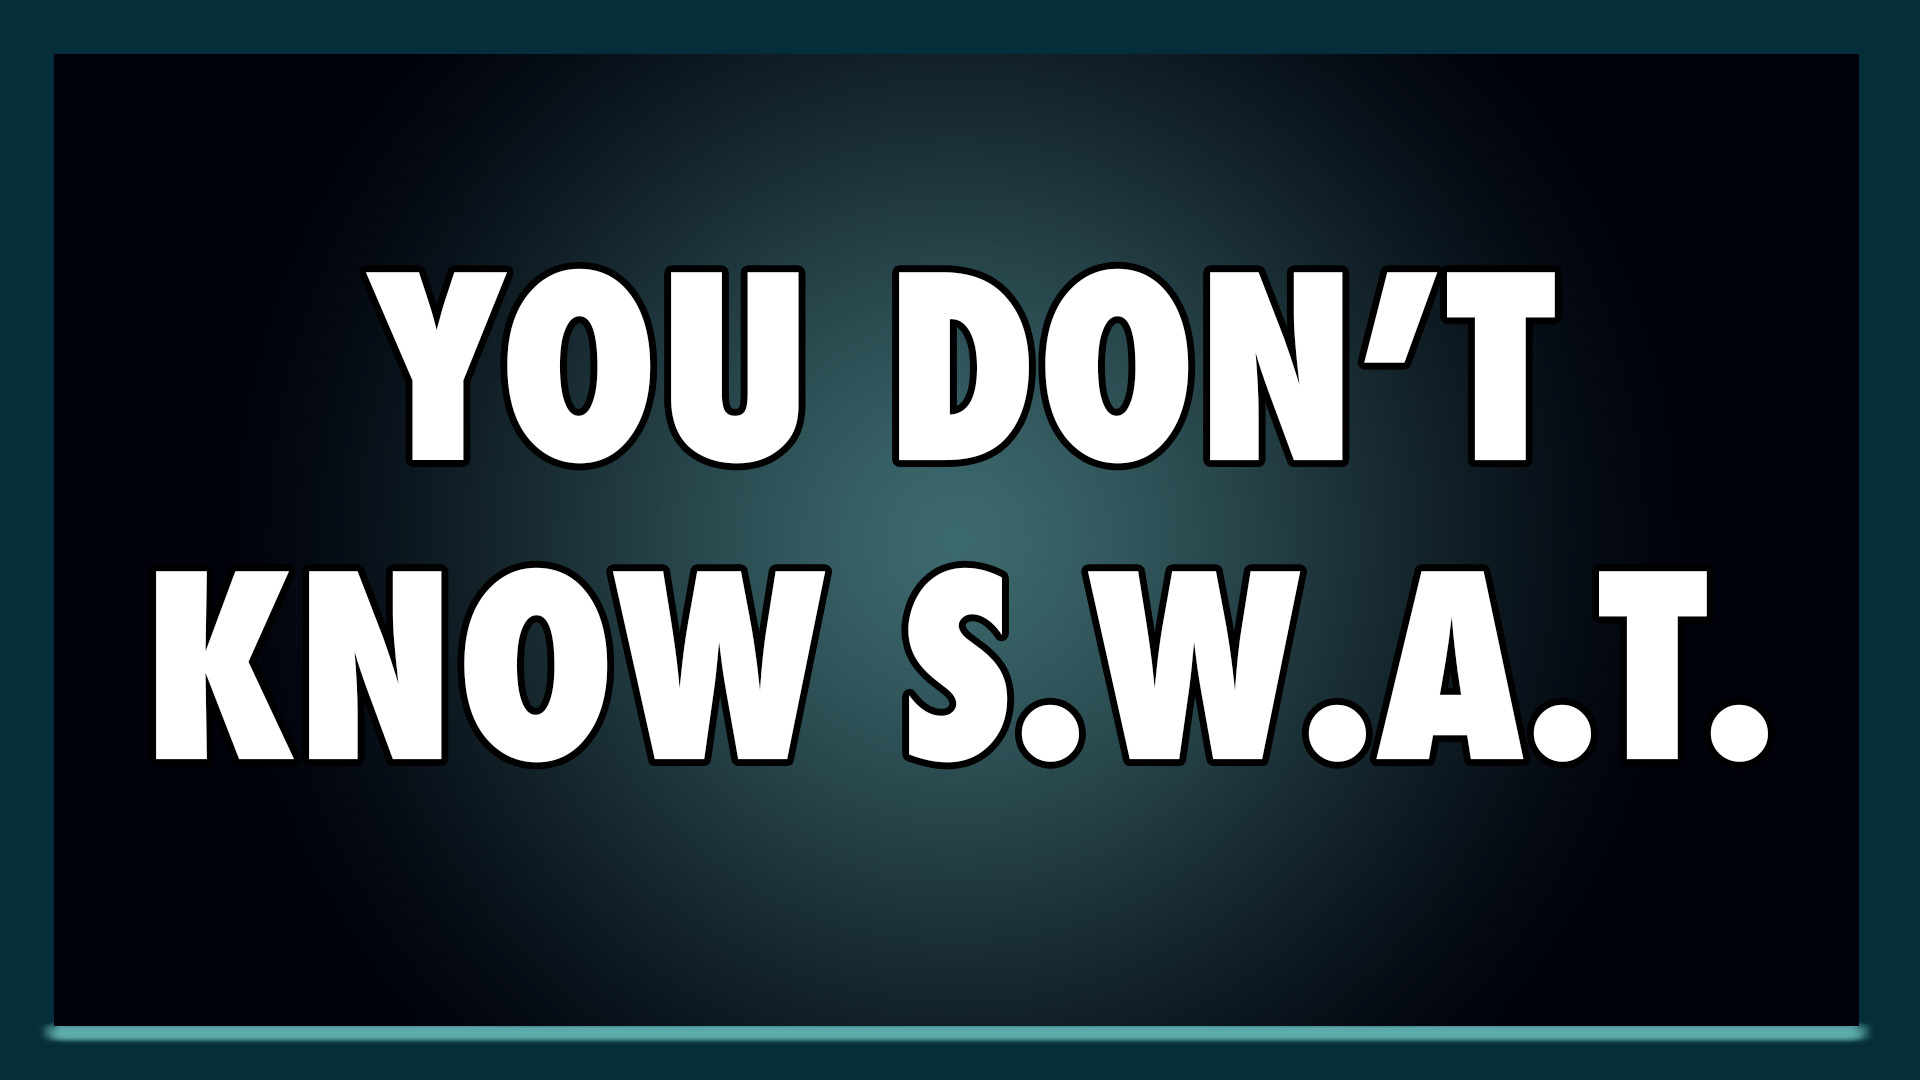 You Don't Know S.W.A.T.